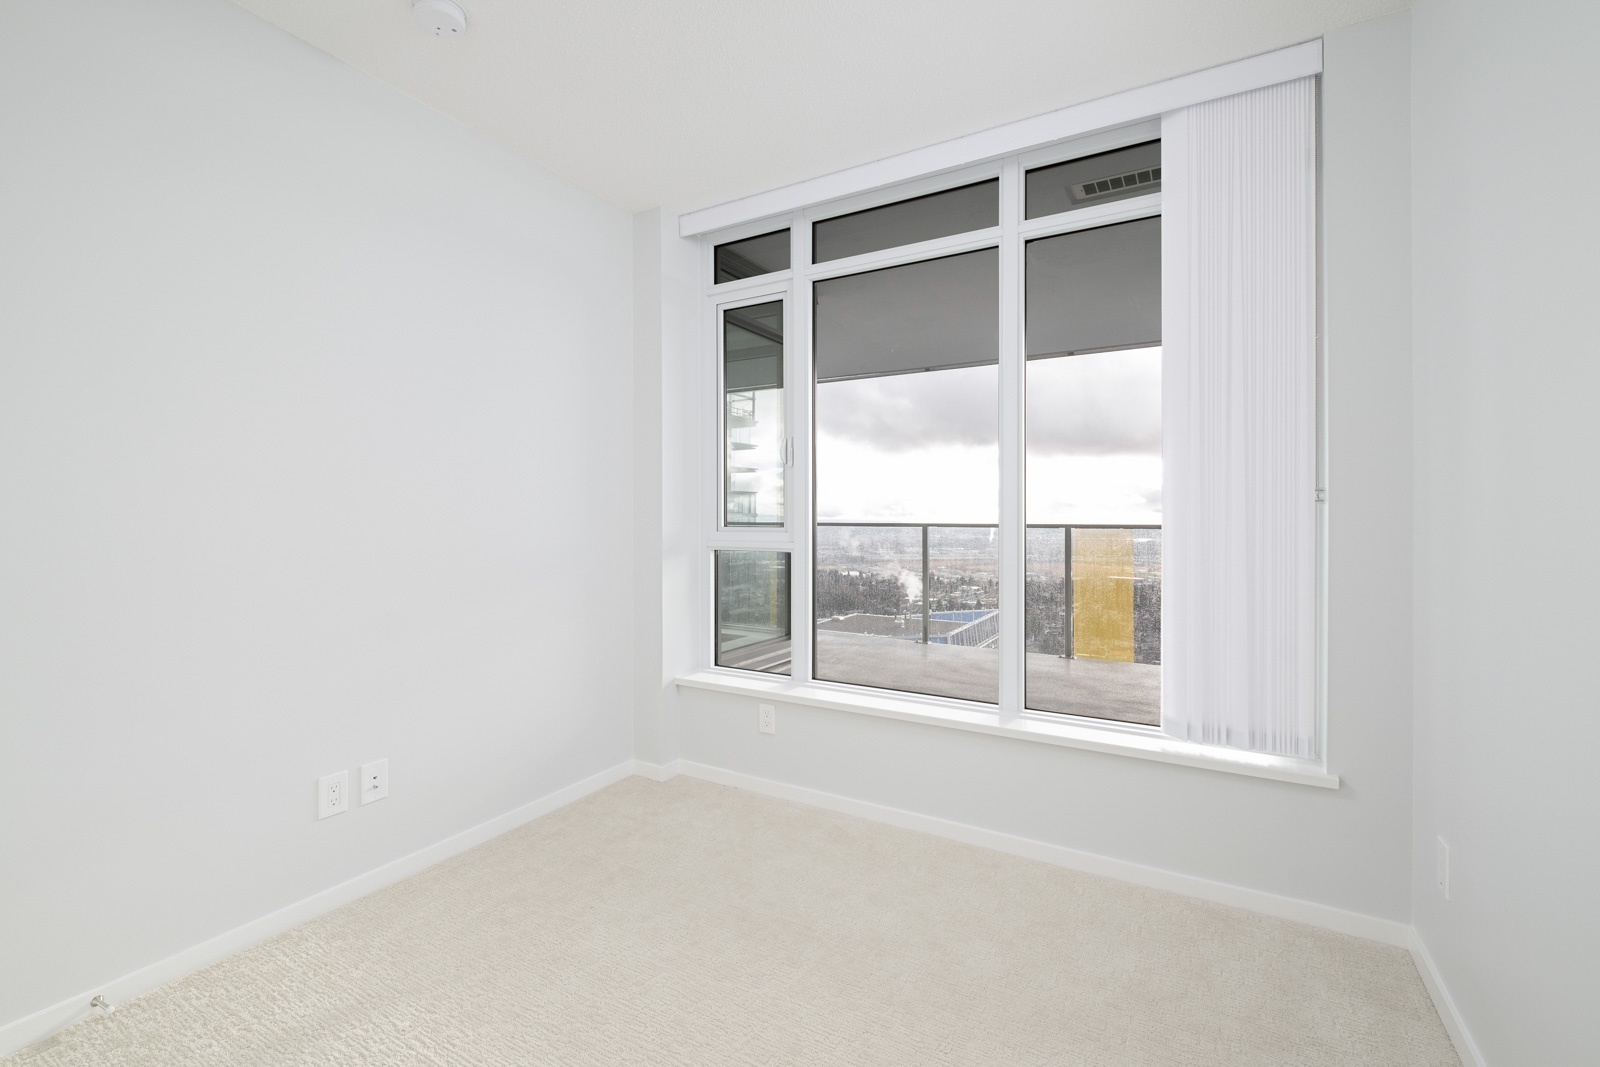 bedroom with white walls and window in rental condo in the Metrotown neighbourhood of Burnaby